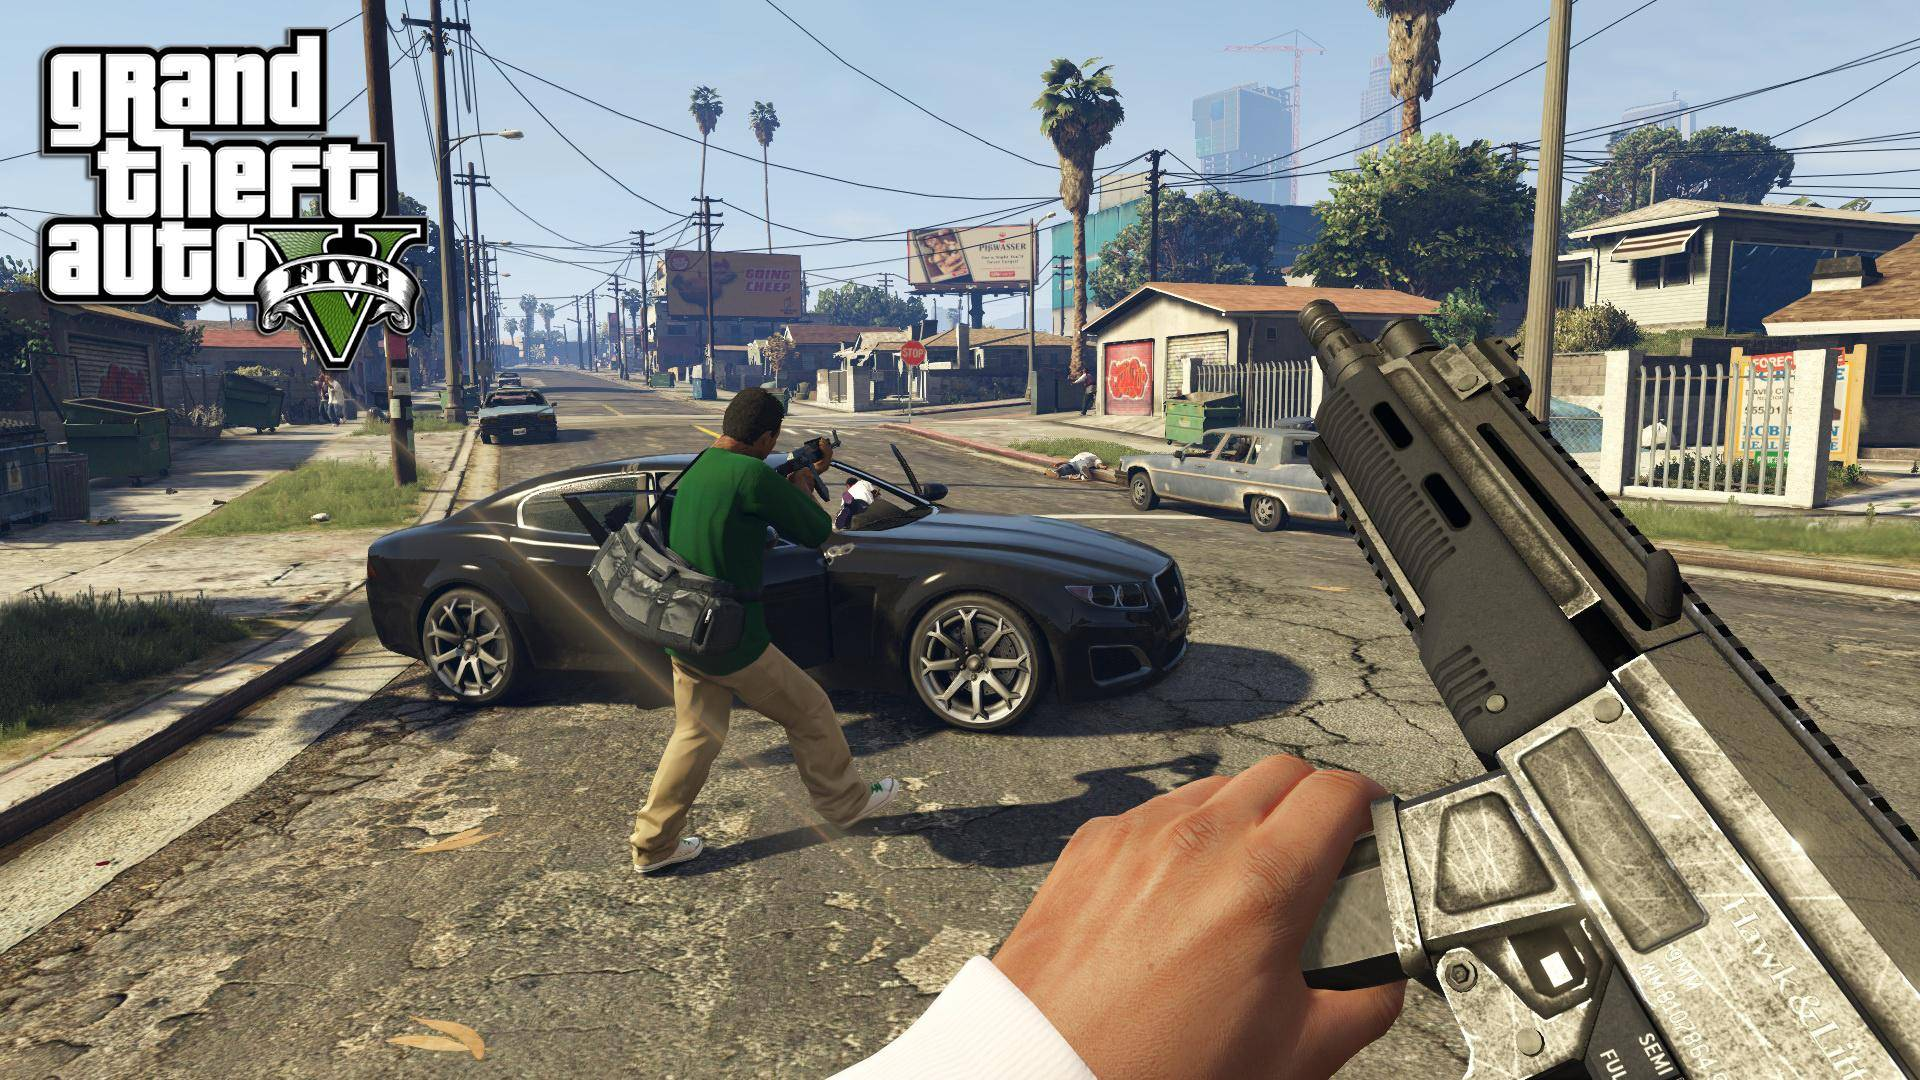 Tải game GTA 5, Grand Theft Auto V full